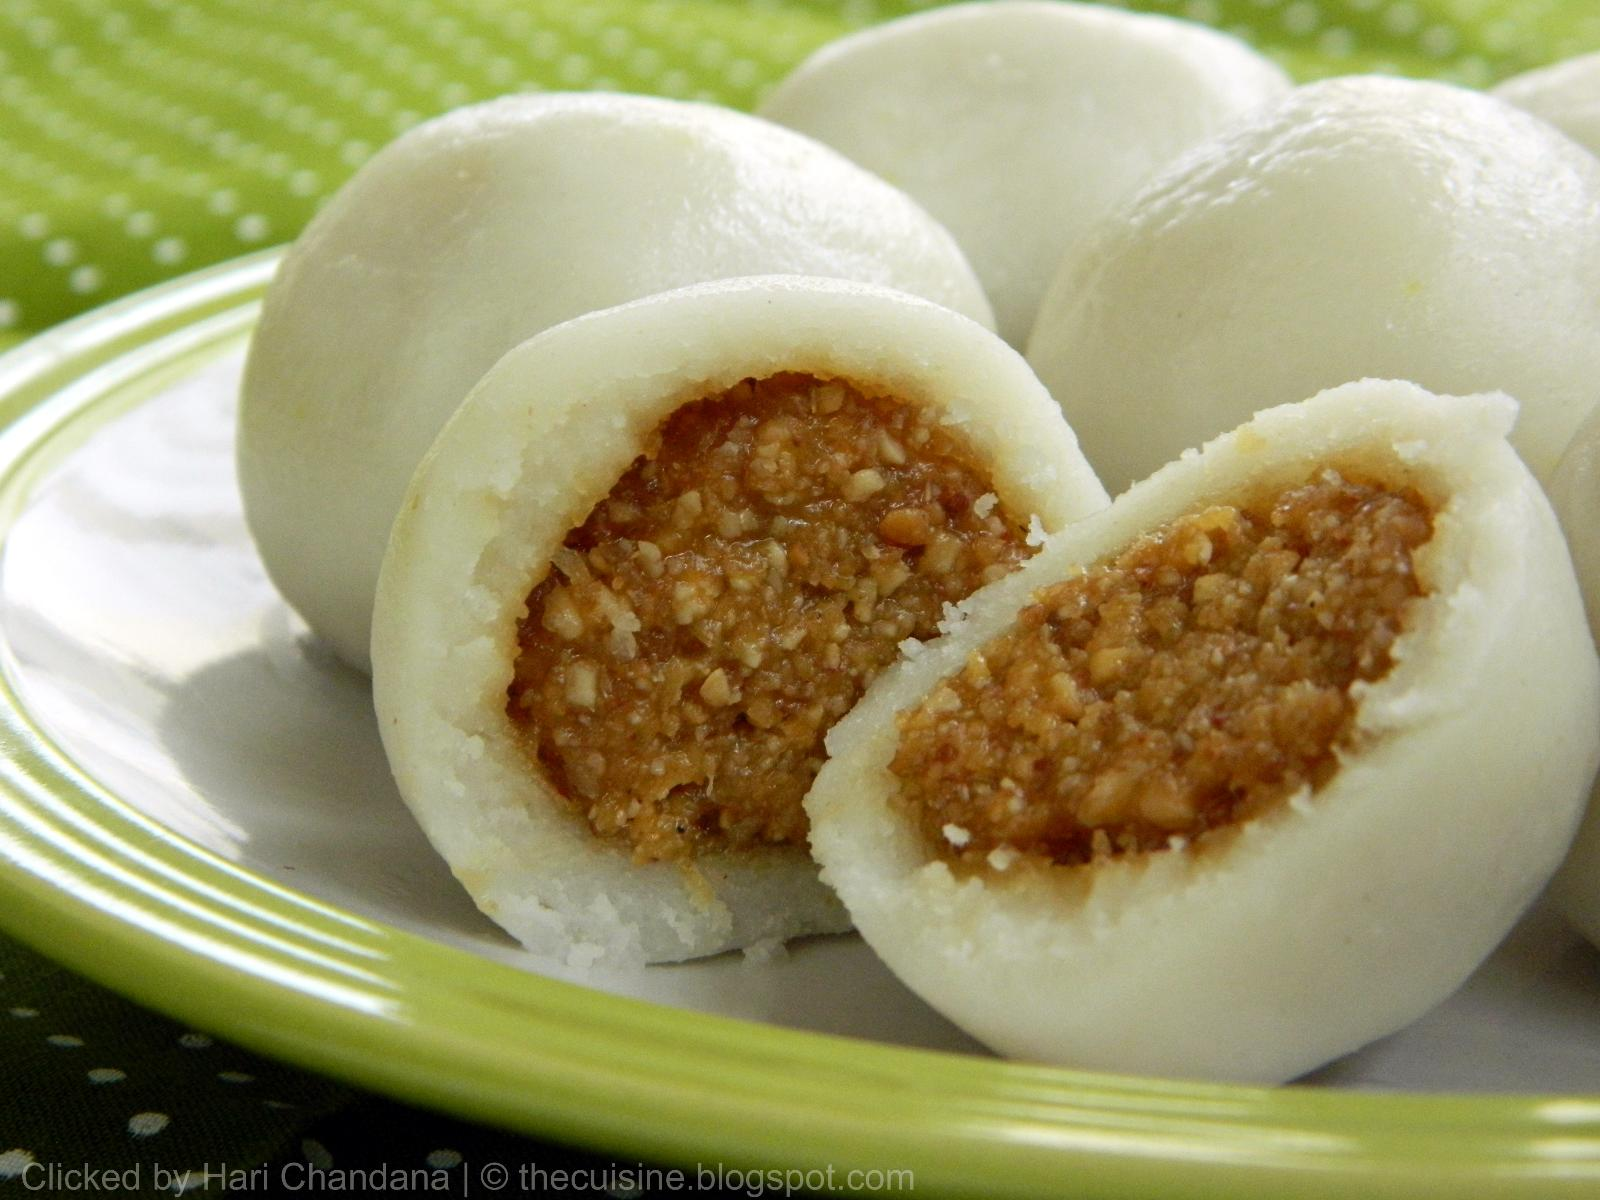 Peanut kozhukattai steamed rice dumplings with peanut coconut peanut kozhukattai steamed rice dumplings with peanut coconut stuffing peanut modak recipe forumfinder Image collections